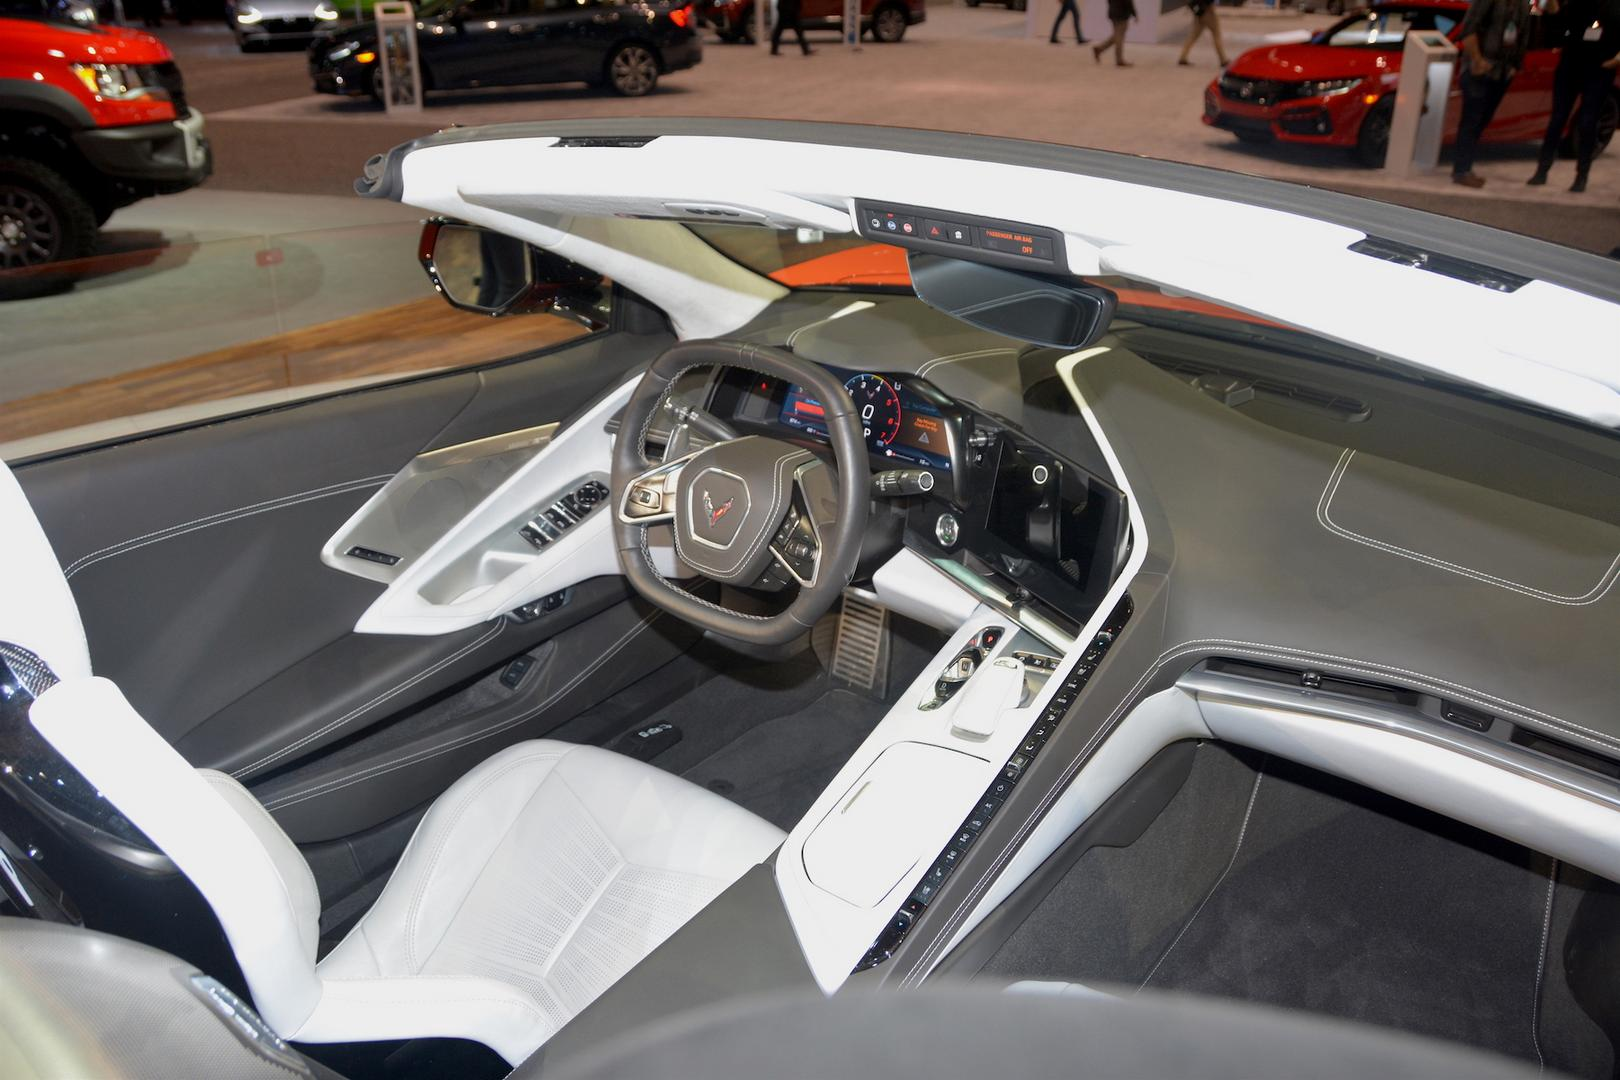 2020 Corvette C8 Convertible Interior